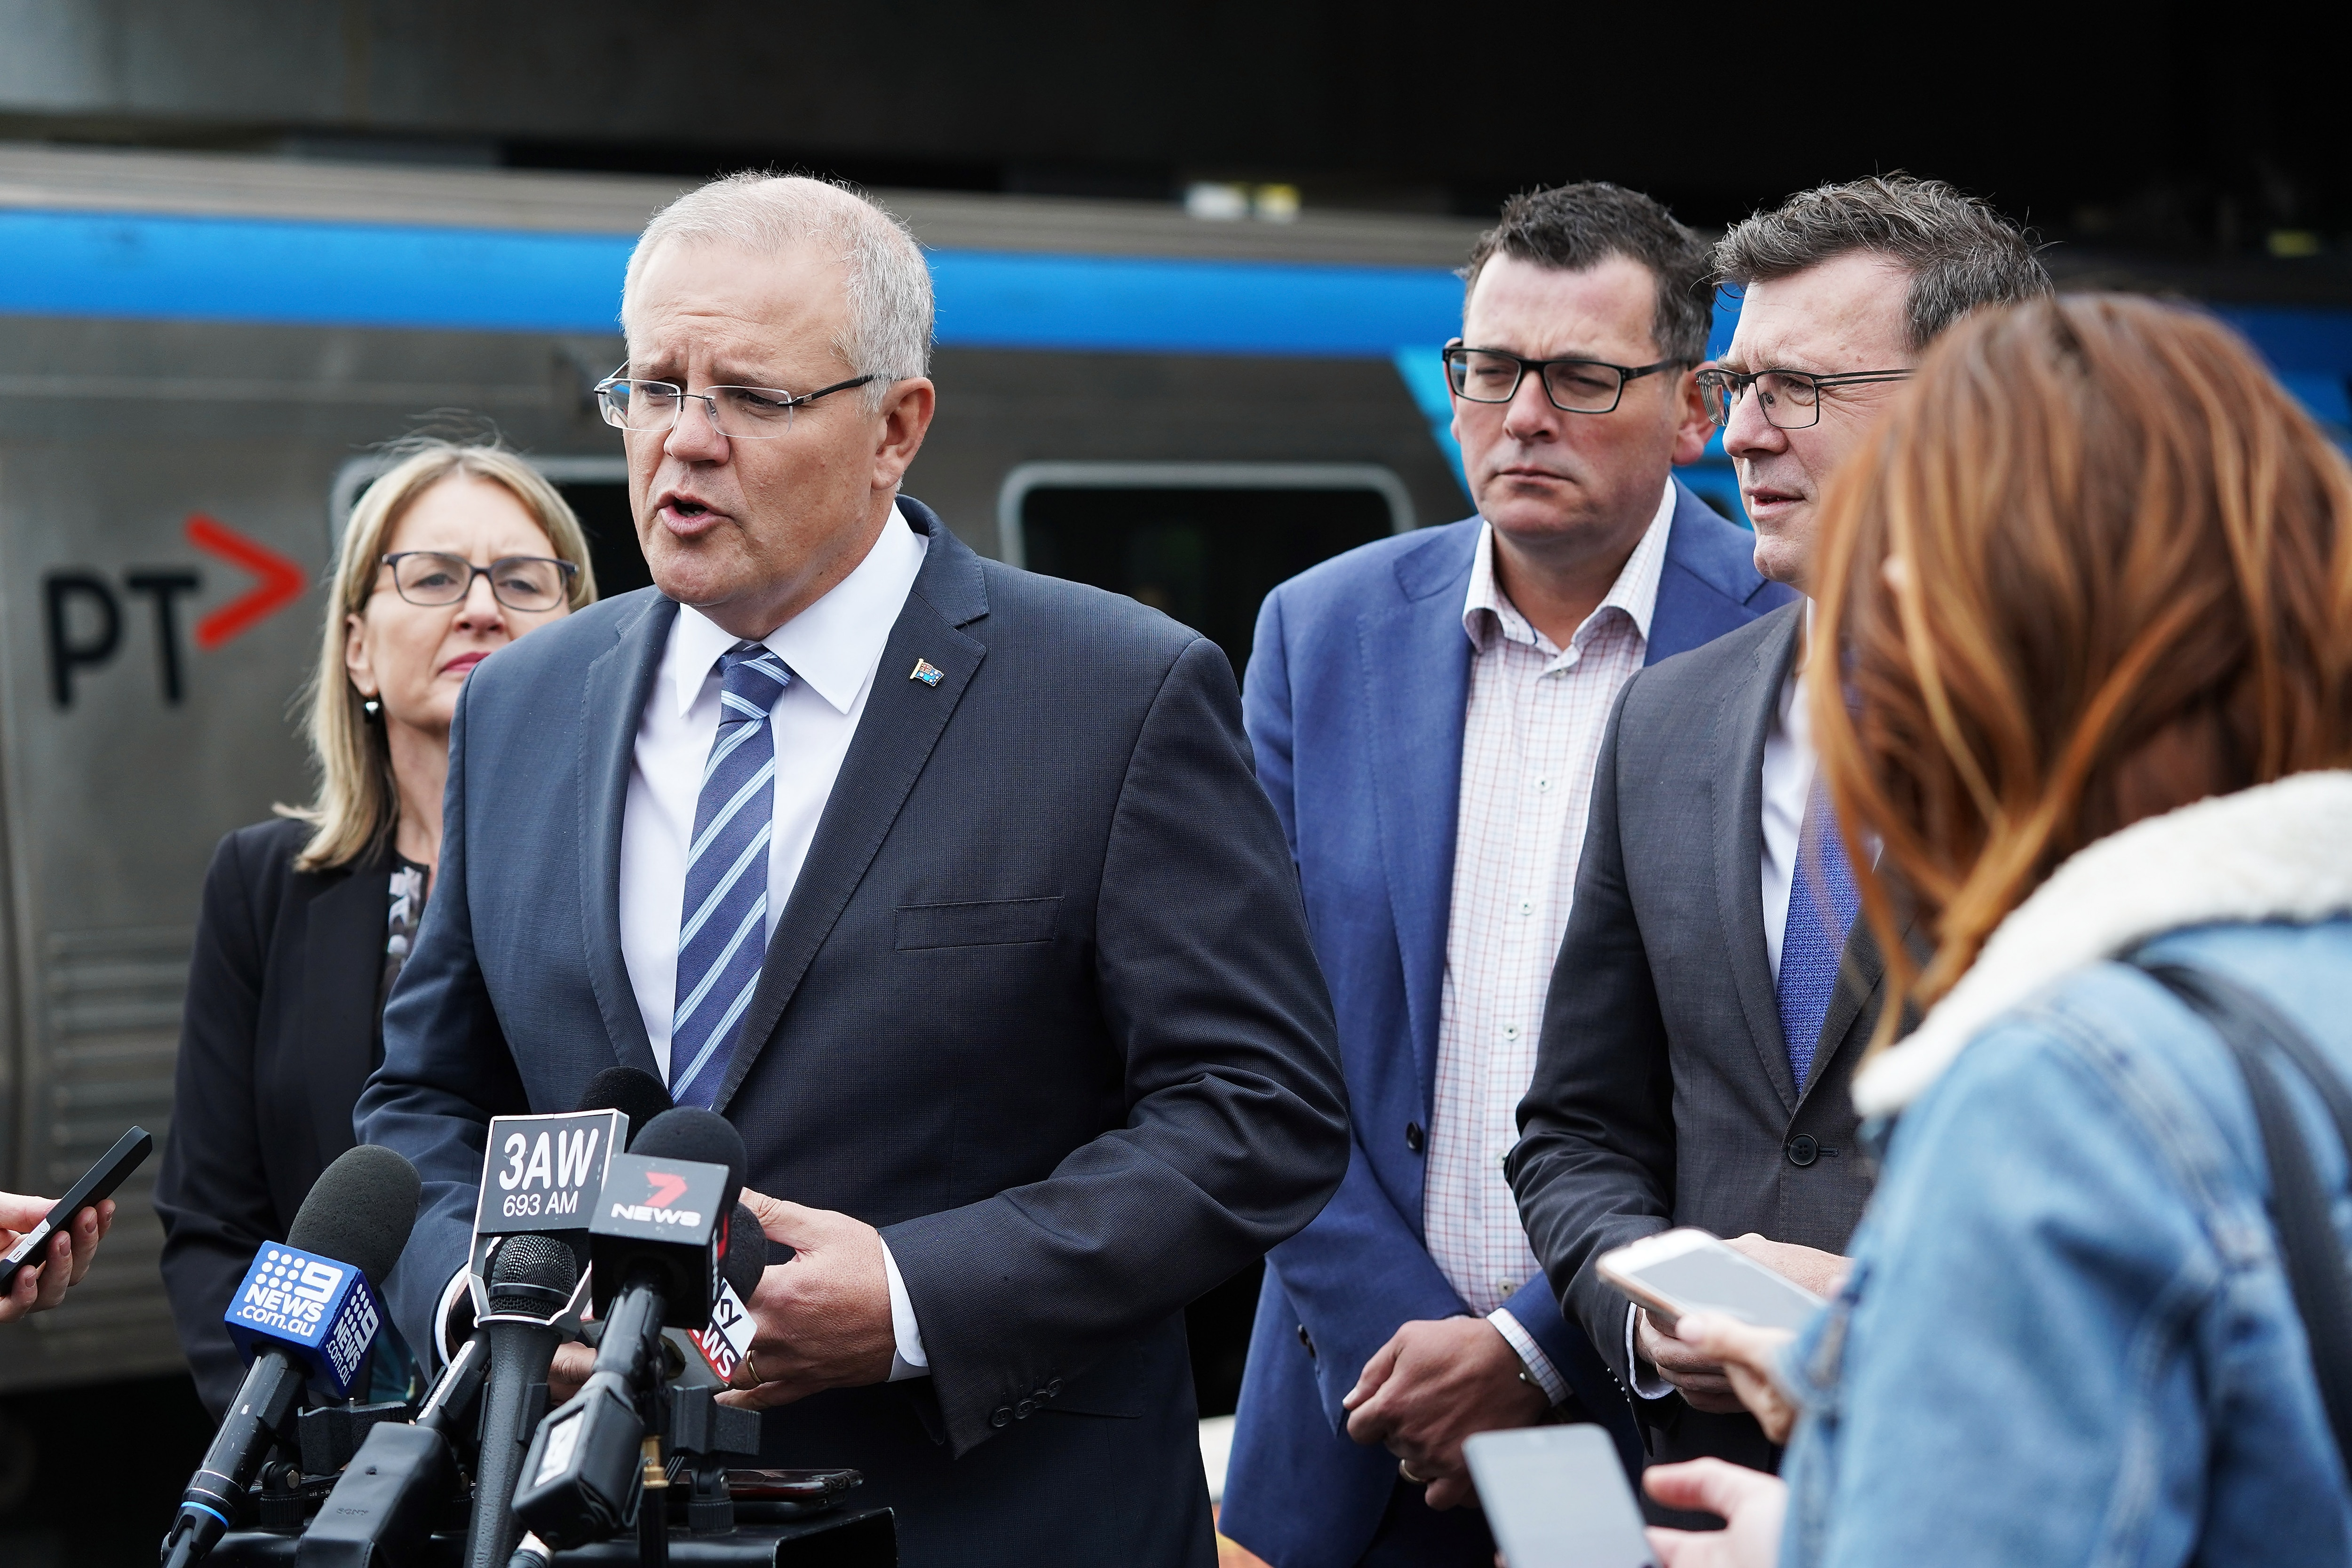 Prime Minister Scott Morrison says a living wage would force businesses to sack workers.